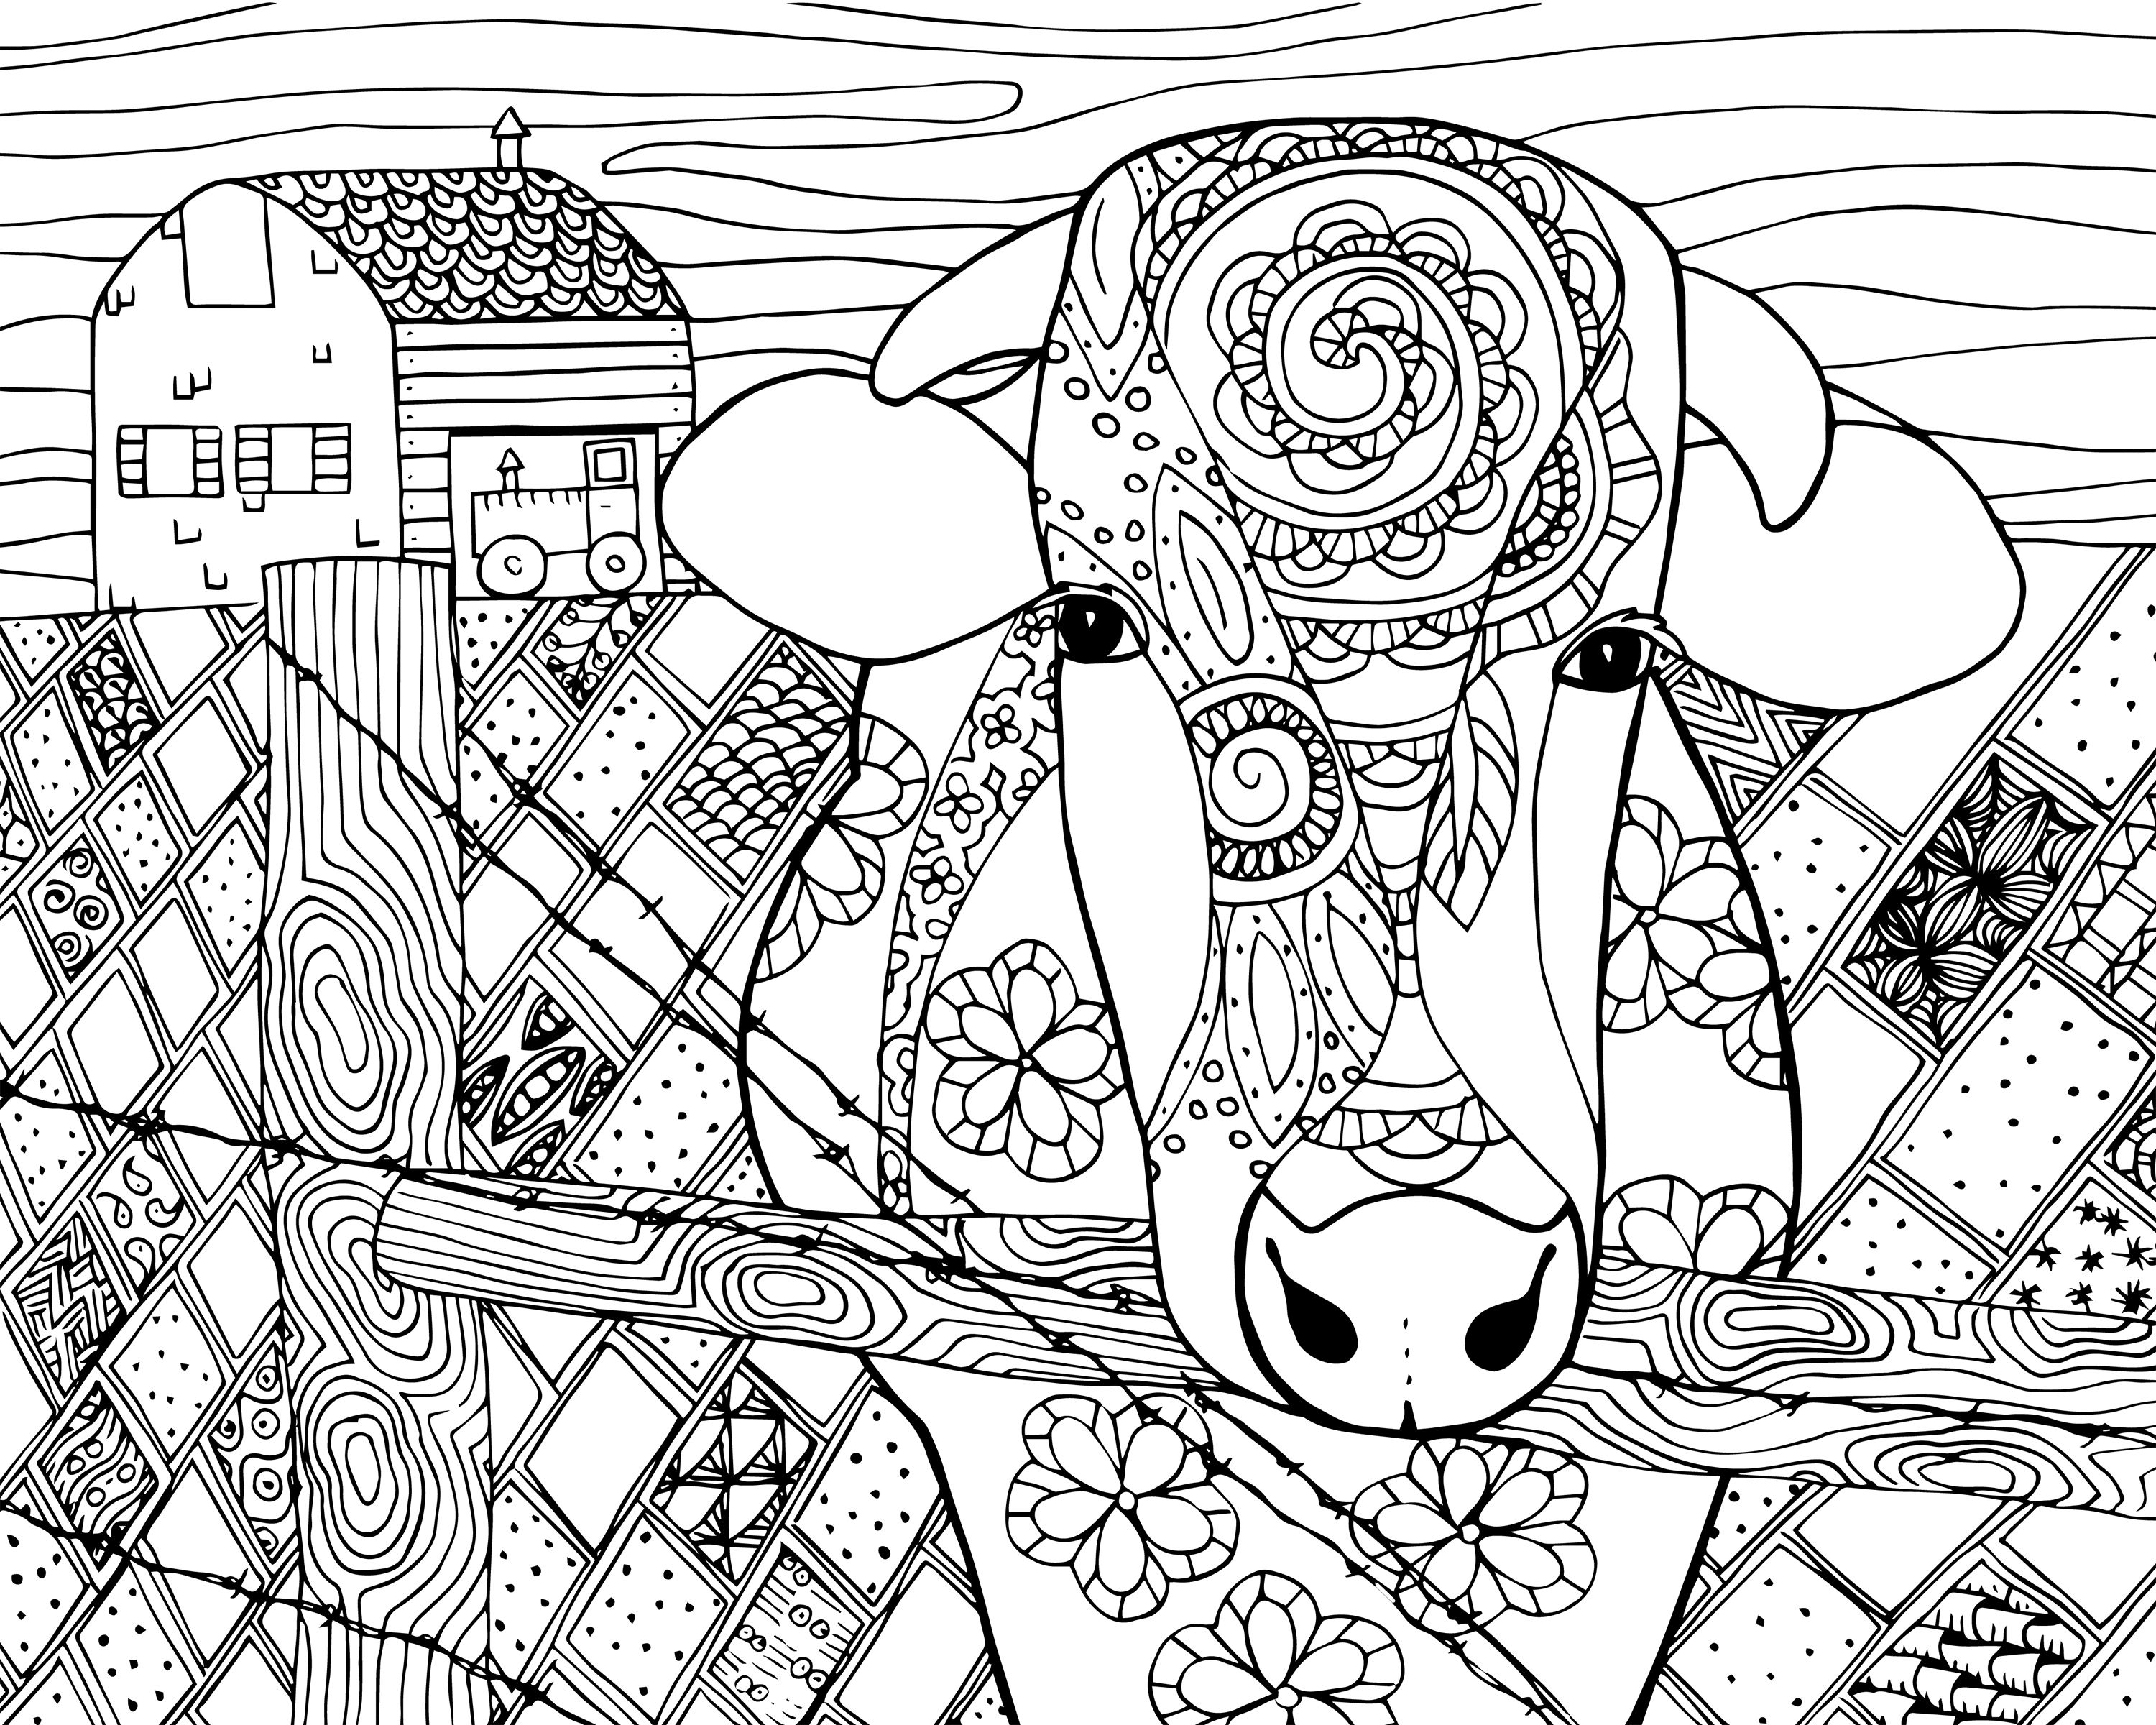 3000x2400 Best Of Animal Coloring Pages For Adults Gallery Printable